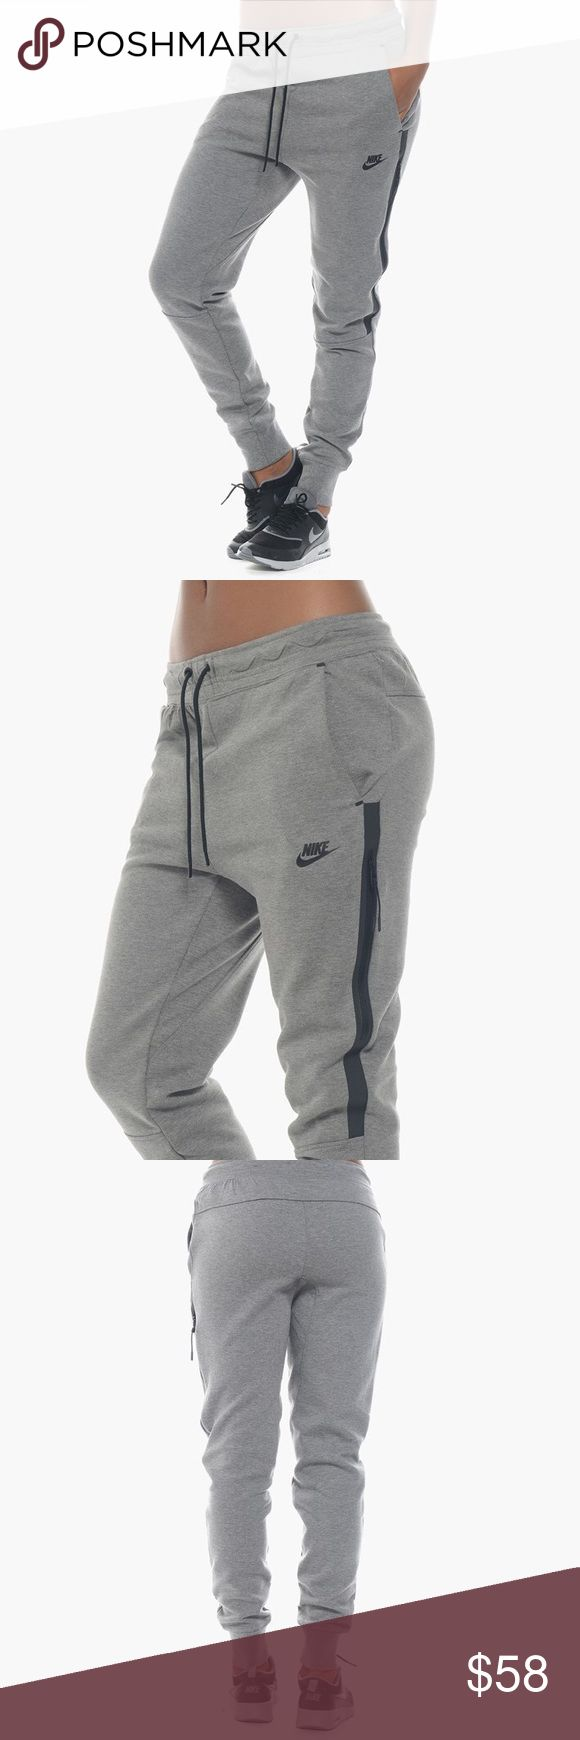 Women's Nike Tech Fleece Pants / Joggers NWT ✅Brand new with tags. Directly from NIKE. ✅Will Ship Out Next Day (Mon-Fri) ✅Send any other ❓my way! No Trades sorry!. Thanks for looking! ✌ Nike Pants Track Pants & Joggers